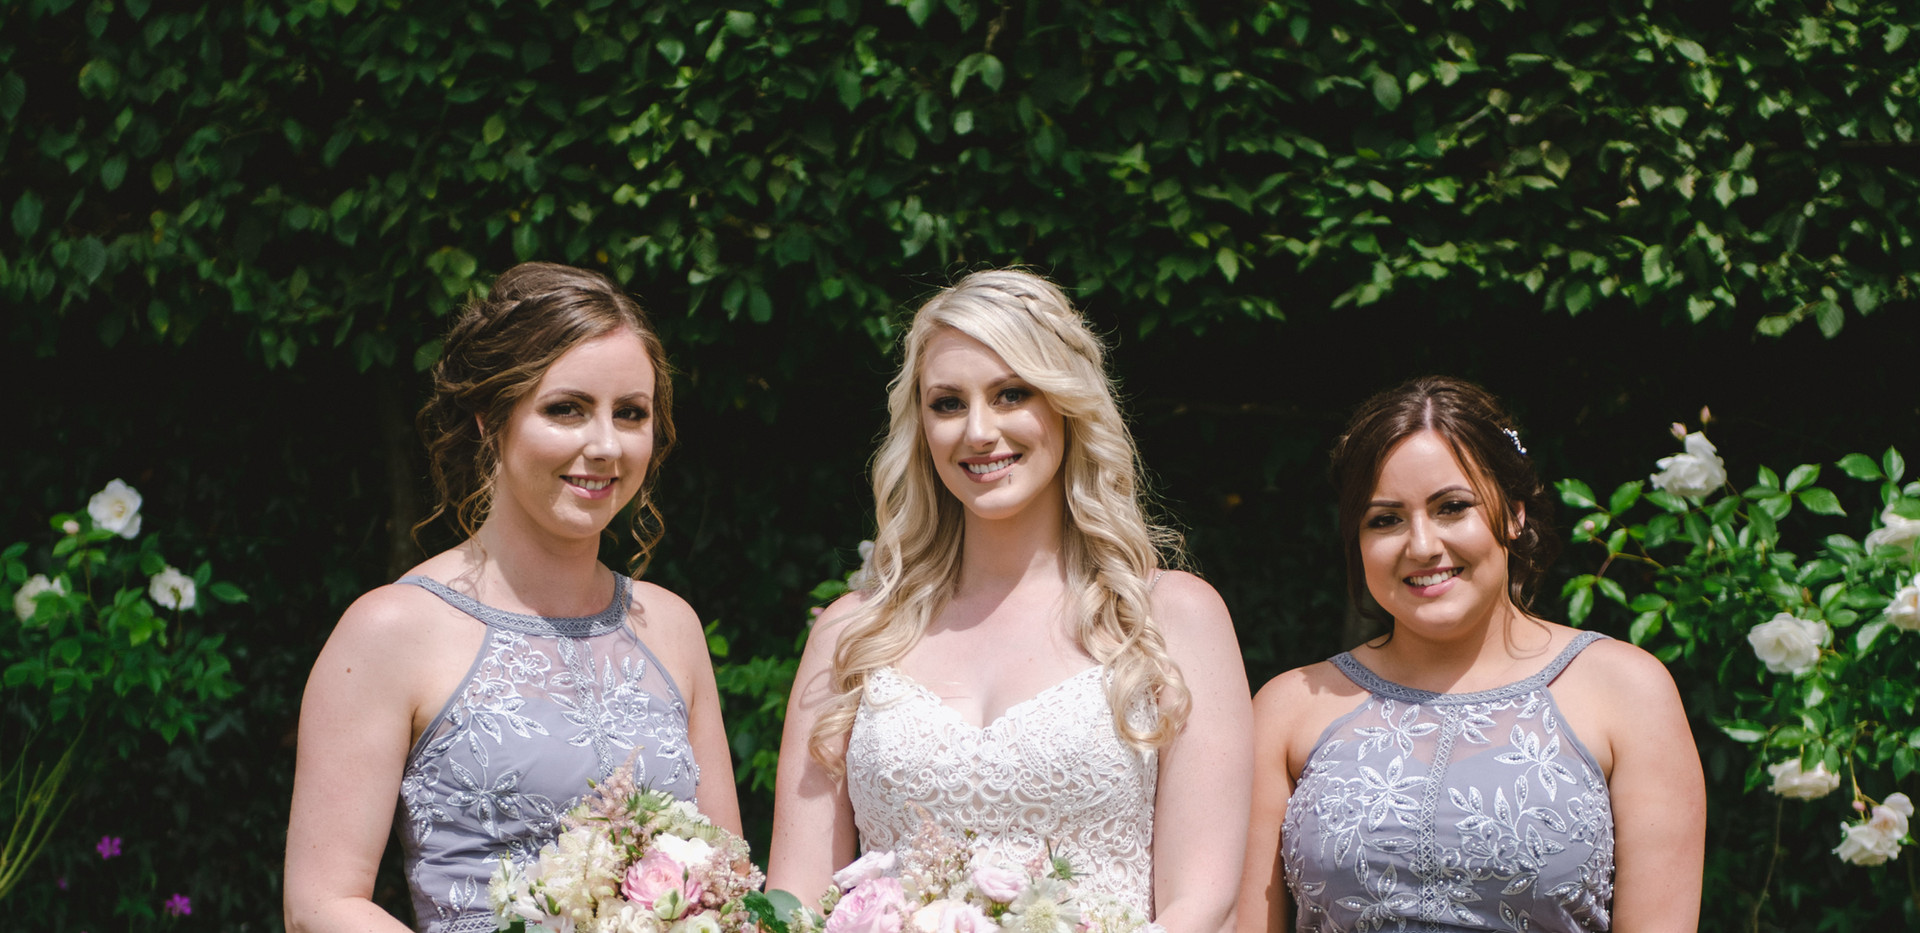 Blush bouquets for the bride and bridesmaids